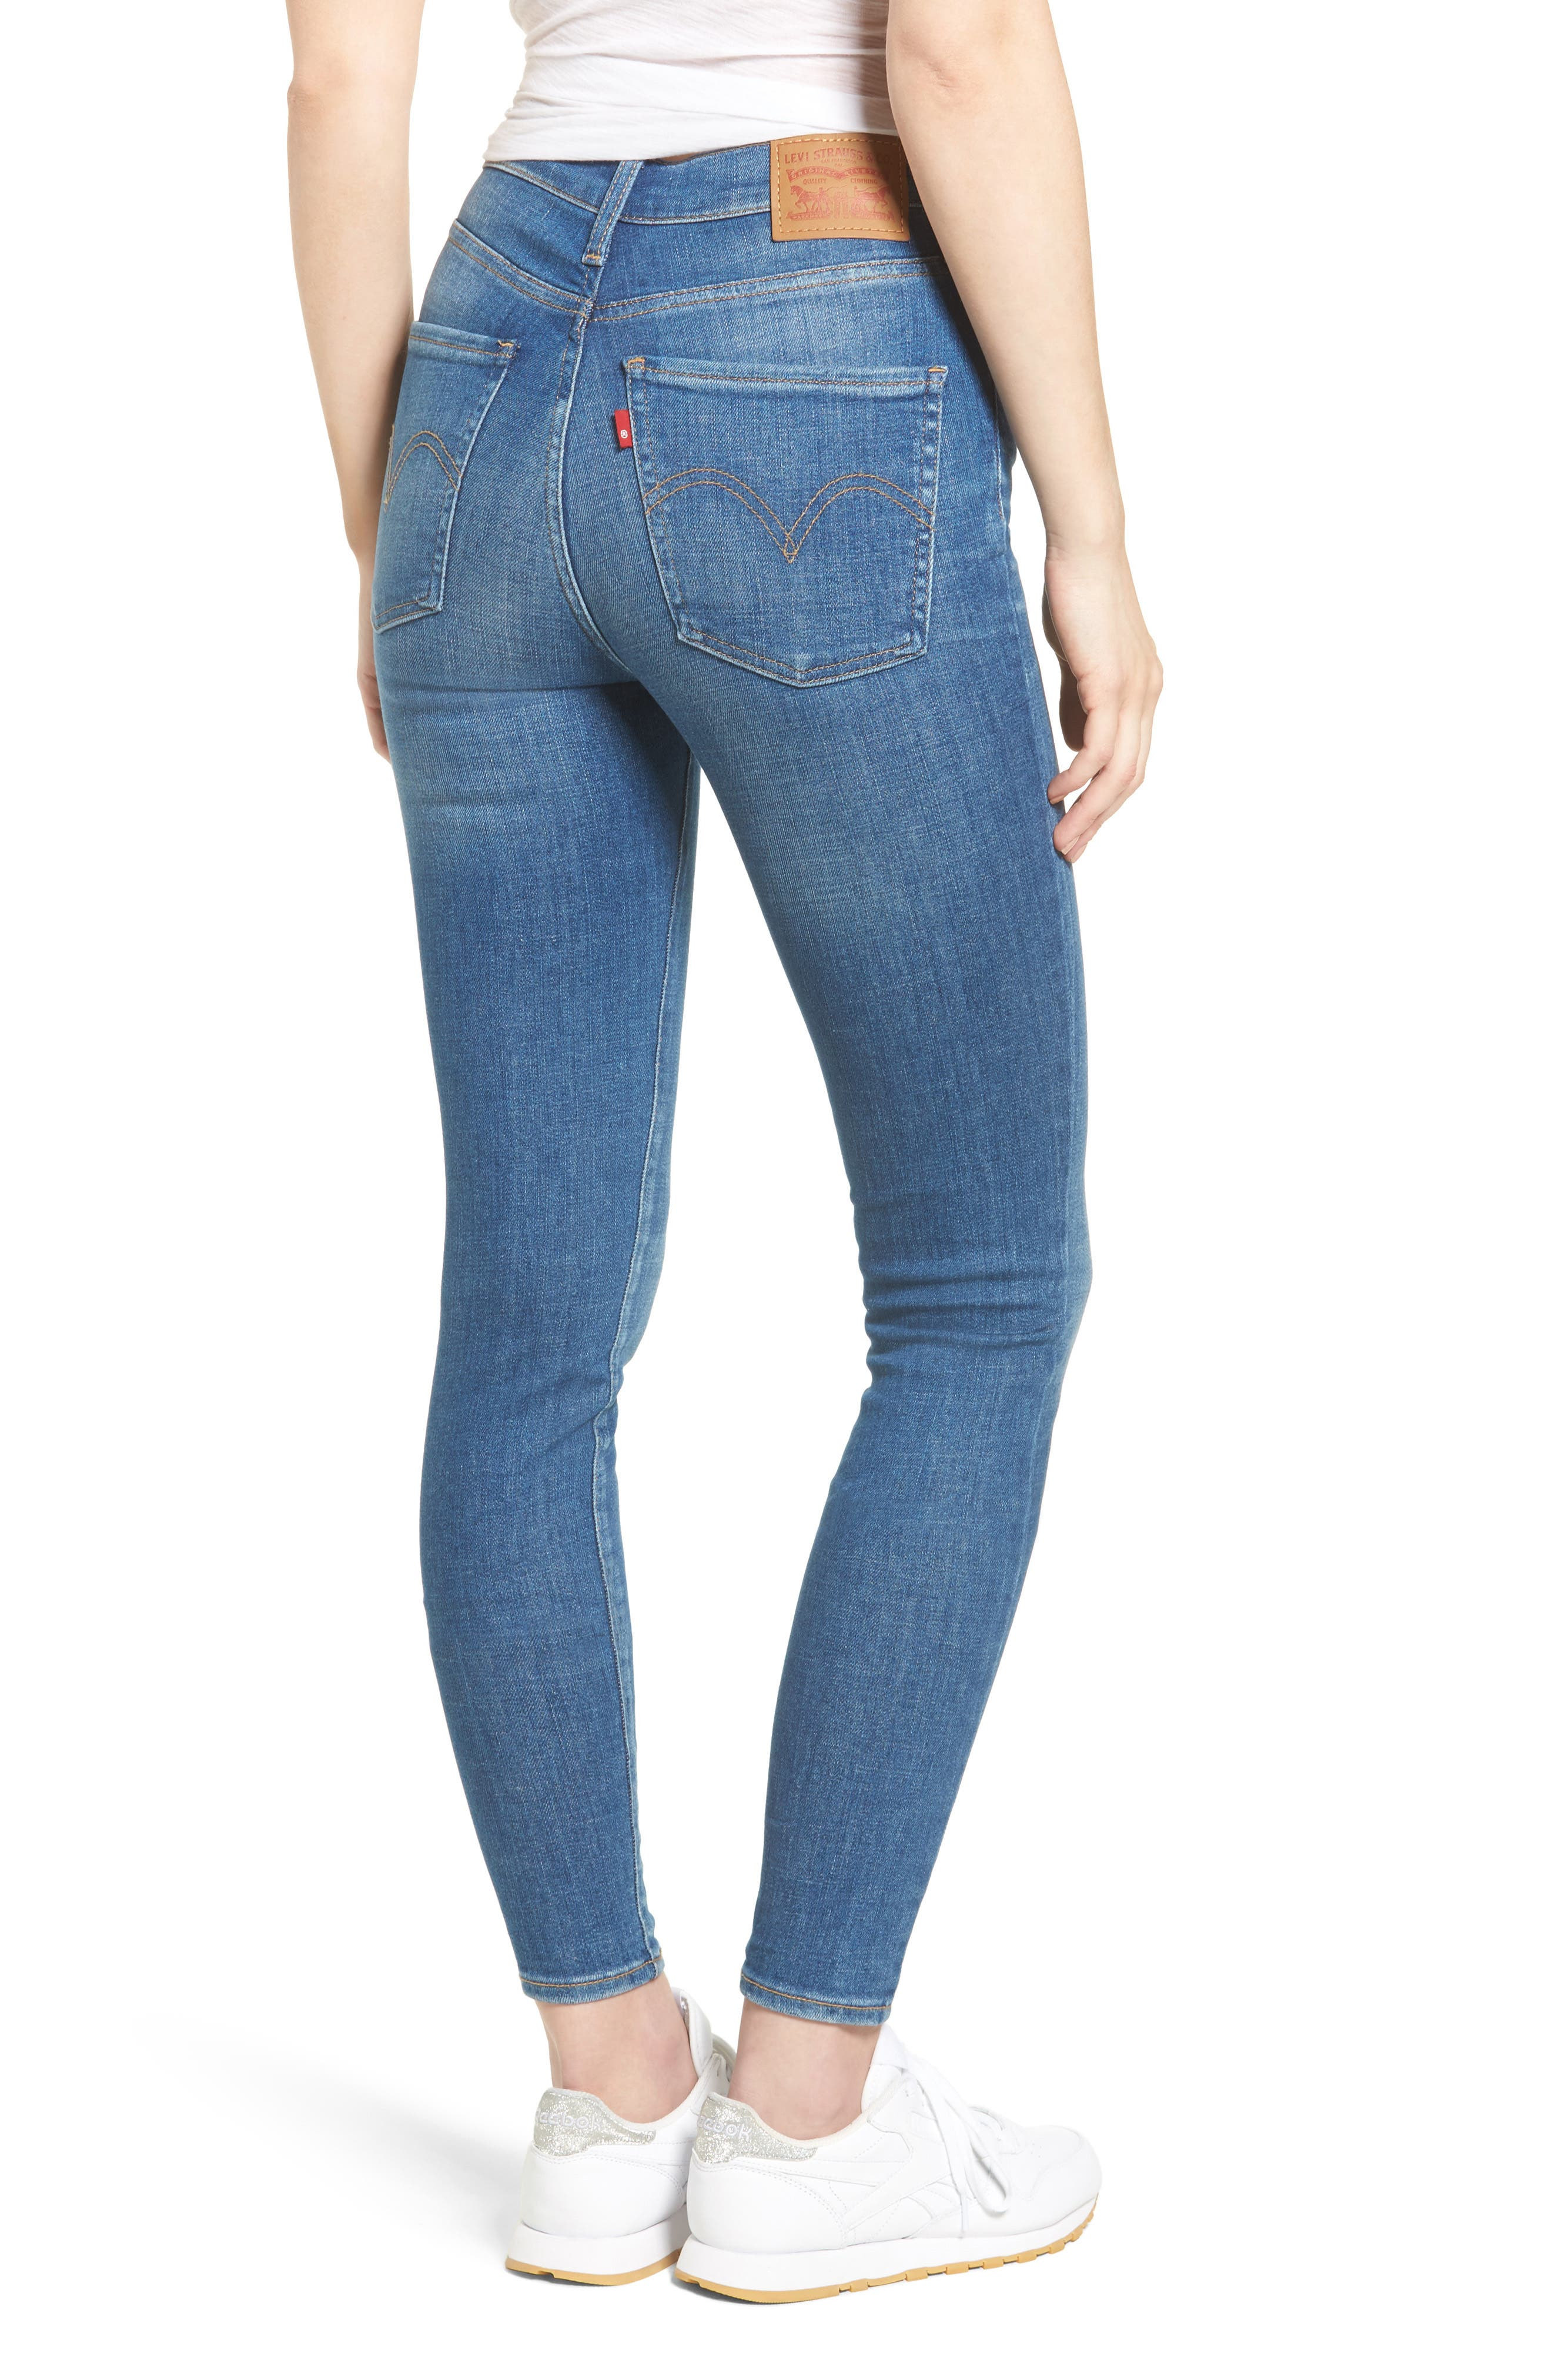 Mile High Skinny Jeans,                             Alternate thumbnail 2, color,                             Shut The Front Door